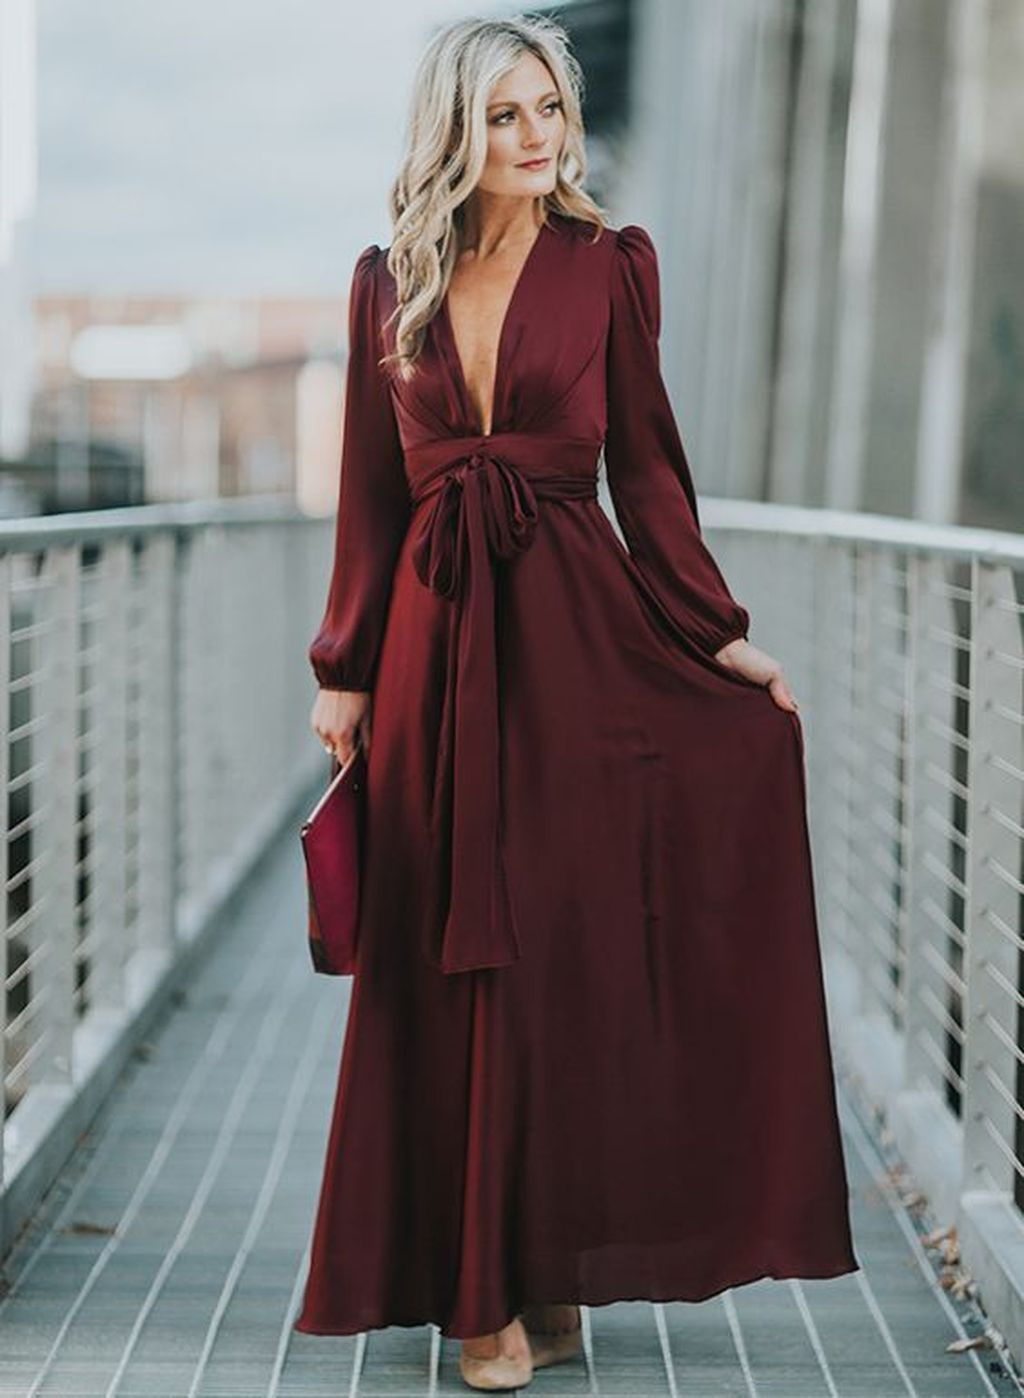 34 The Best Winter Wedding Guest Outfit Ideas To Keep Warm